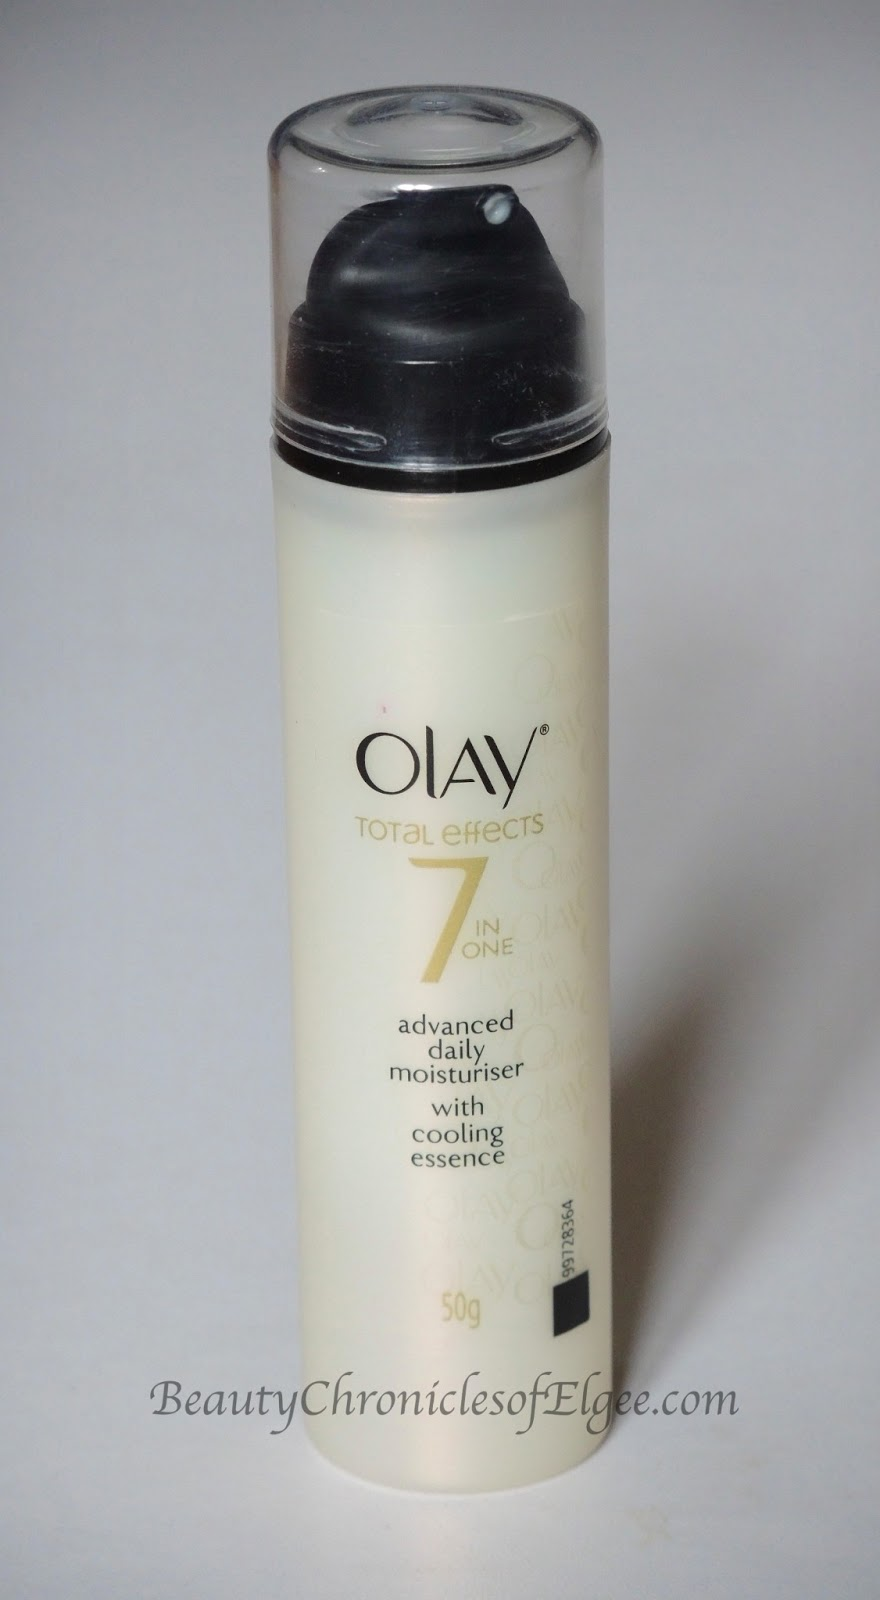 Olay Fresh Effects Skin Care